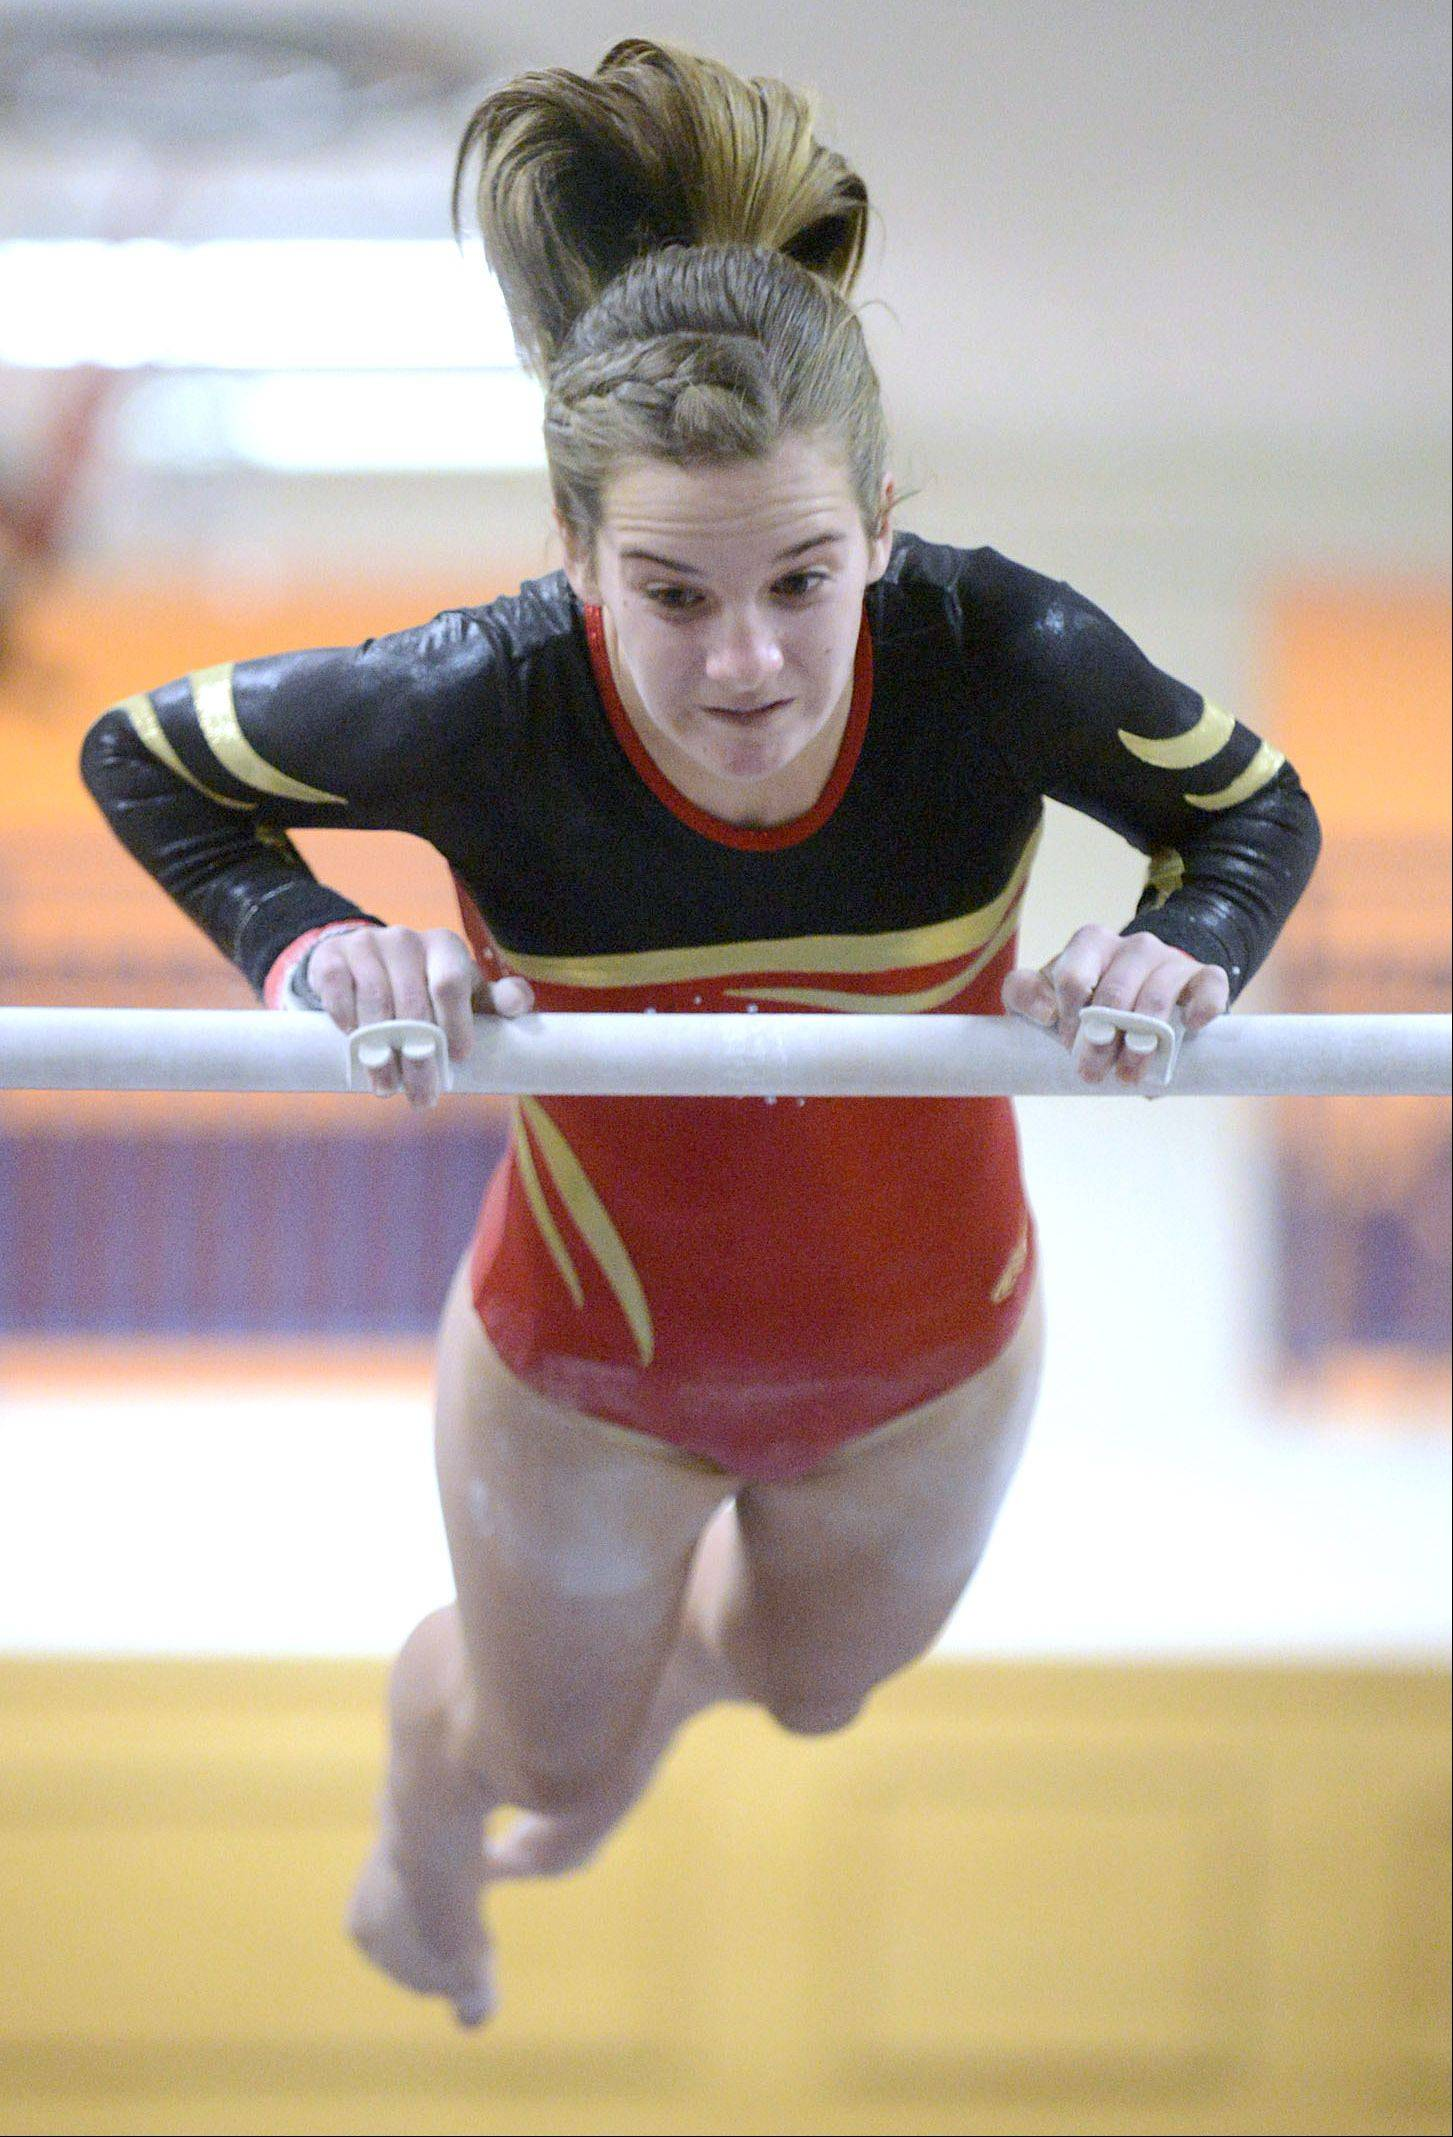 Batavia's Cameron Hindel competes on the uneven bars during the gymnastics meet vs. Geneva on Wednesday, January 8.